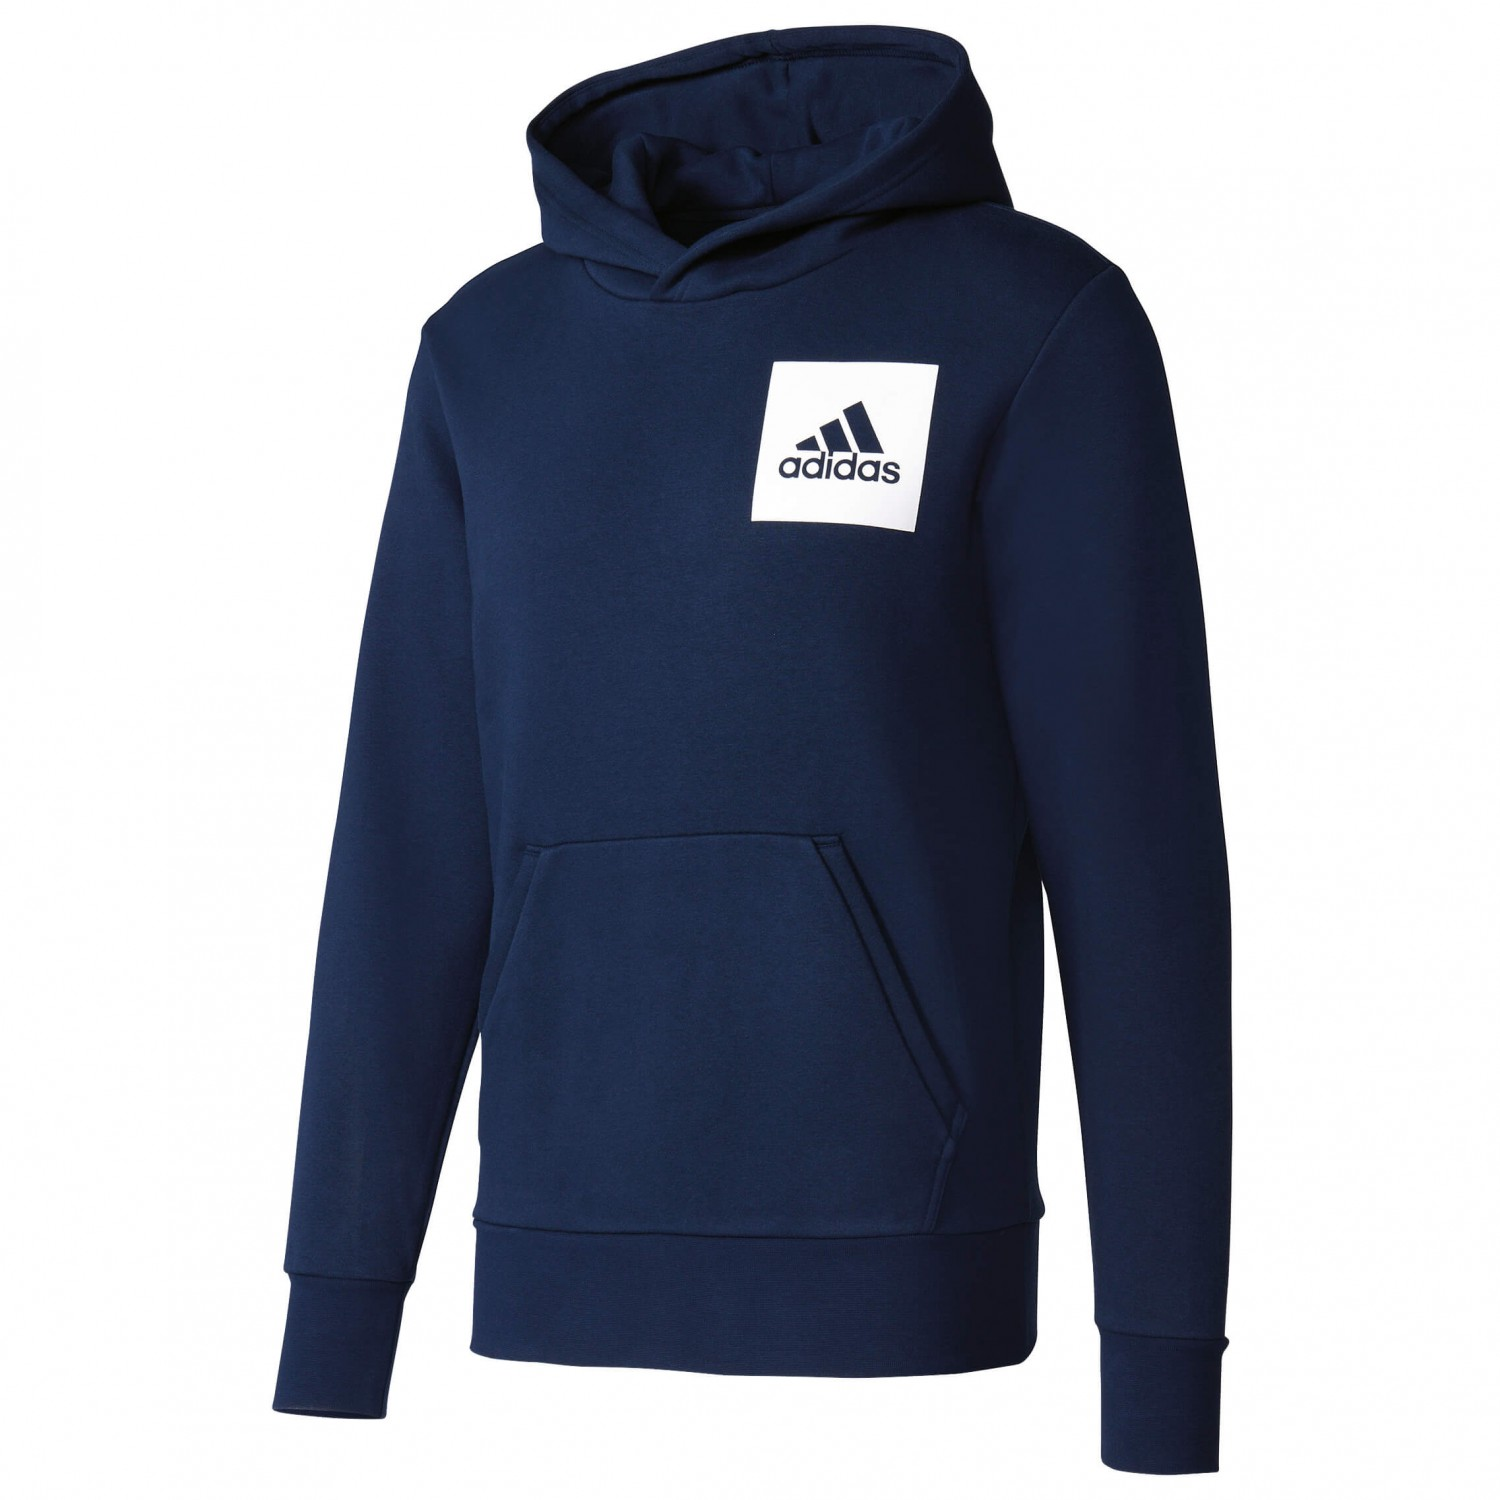 adidas essentials chest logo pullover hood fleece hoodie men 39 s buy online. Black Bedroom Furniture Sets. Home Design Ideas